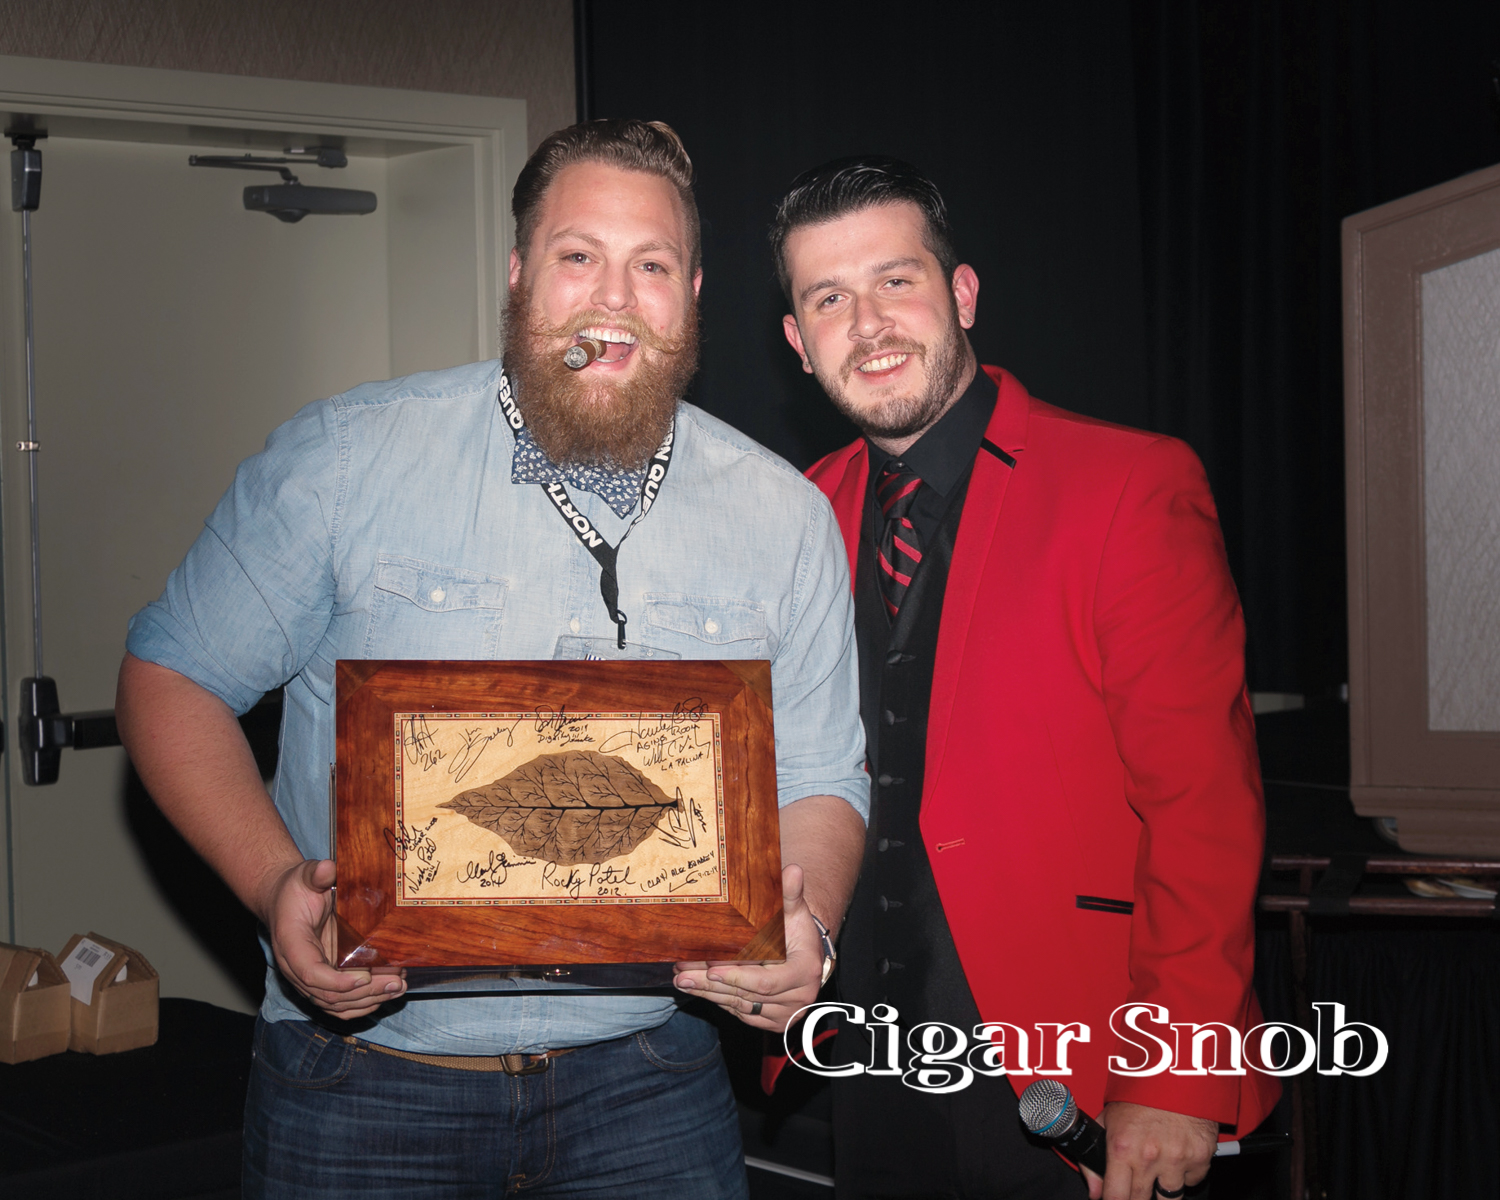 Blake Crossley hands over the signed humidor